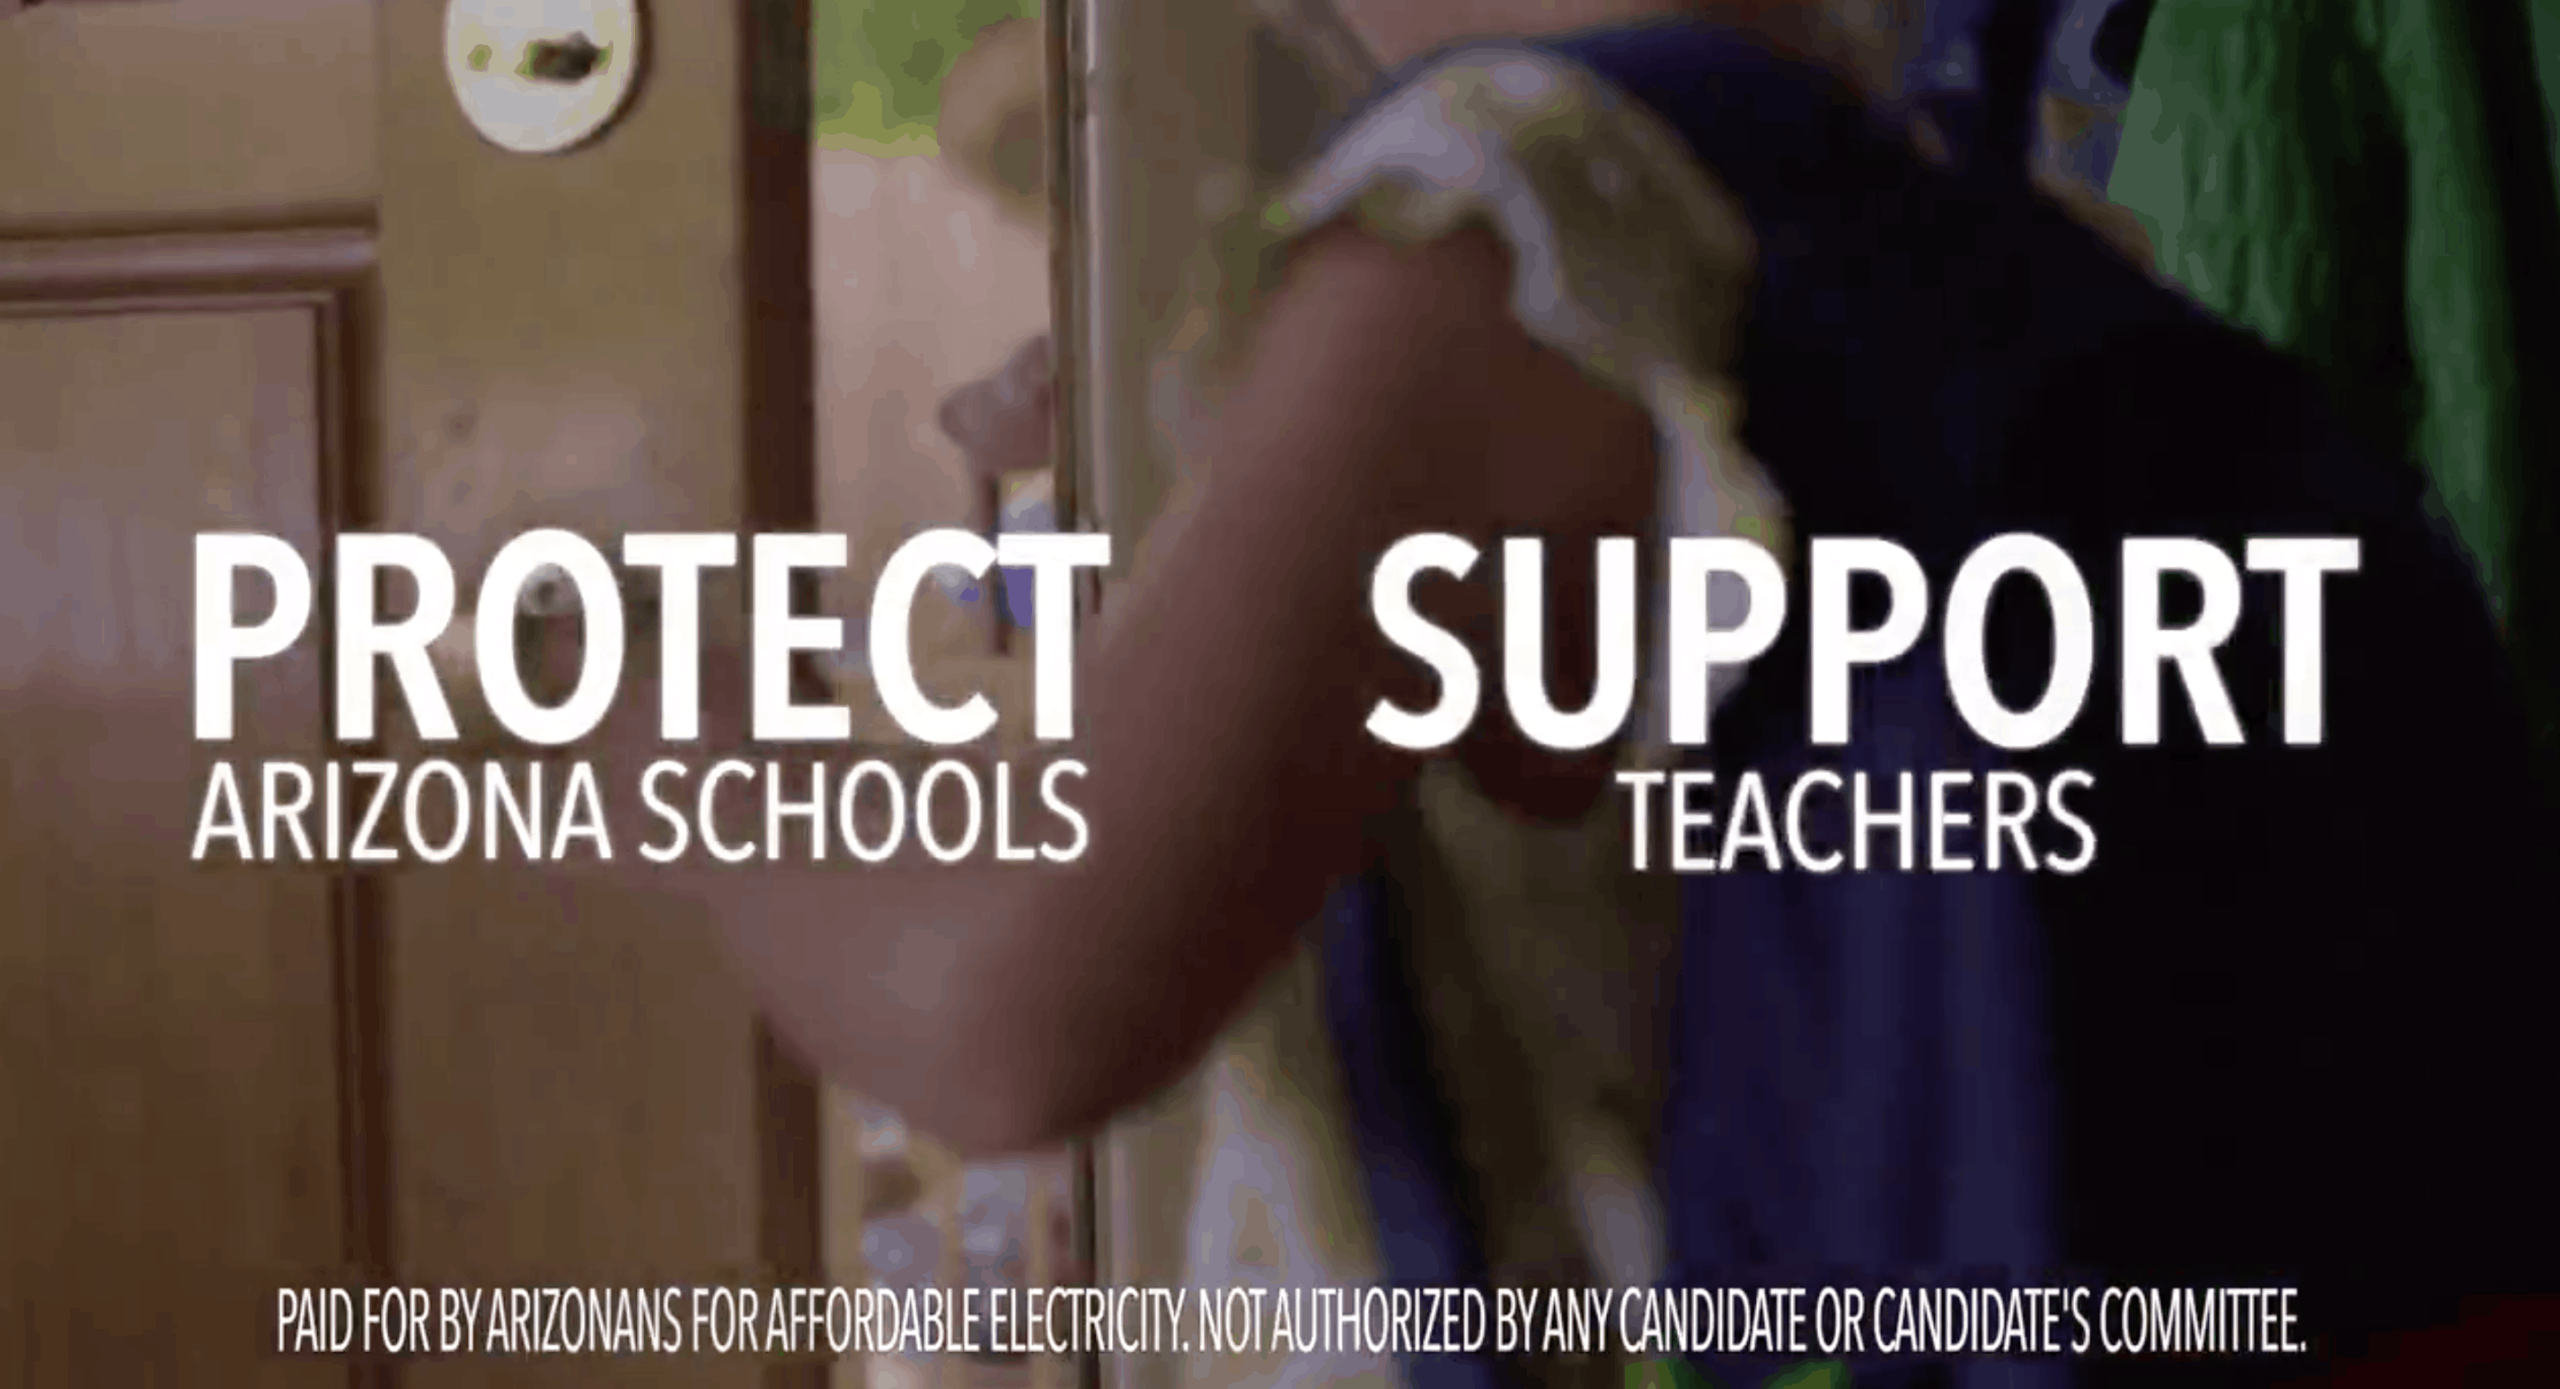 Arizonans for Affordable Electricity's ad against clean energy Prop 127. APS also funds anti-#InvestInEd organizations.